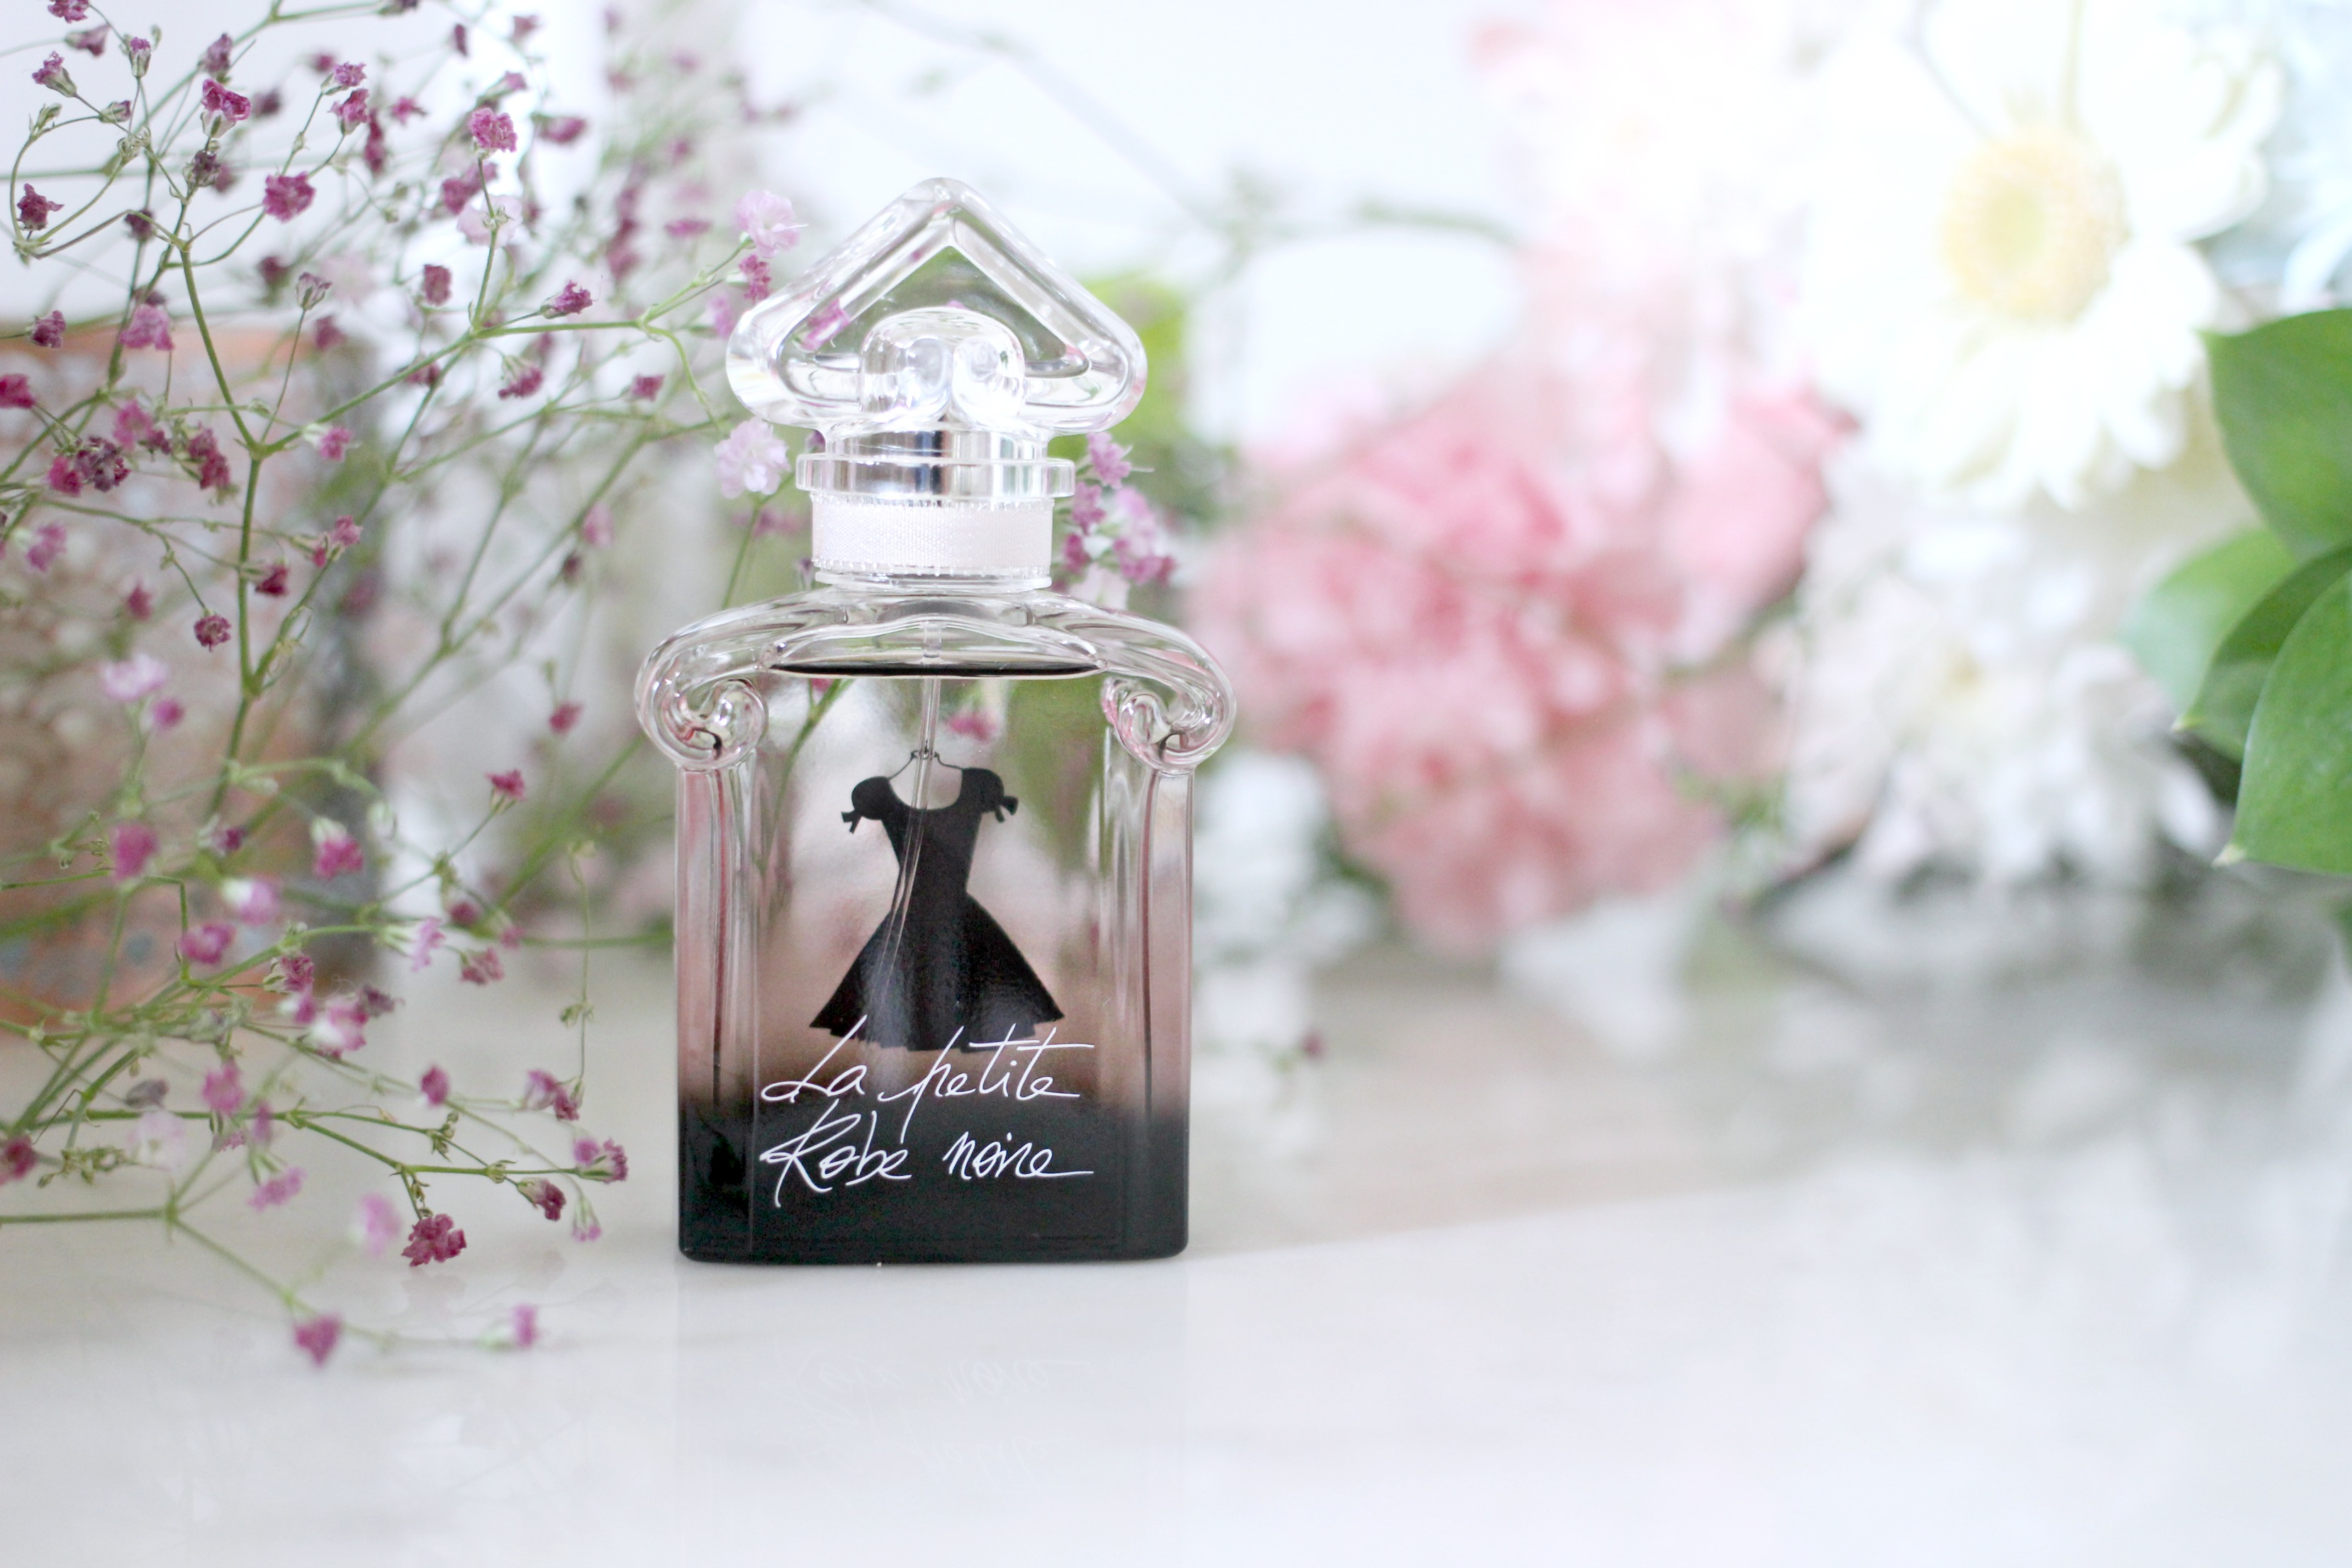 Guerlain Spring Summer Beauty Makeup Collection Review - La Petite Robe Noire